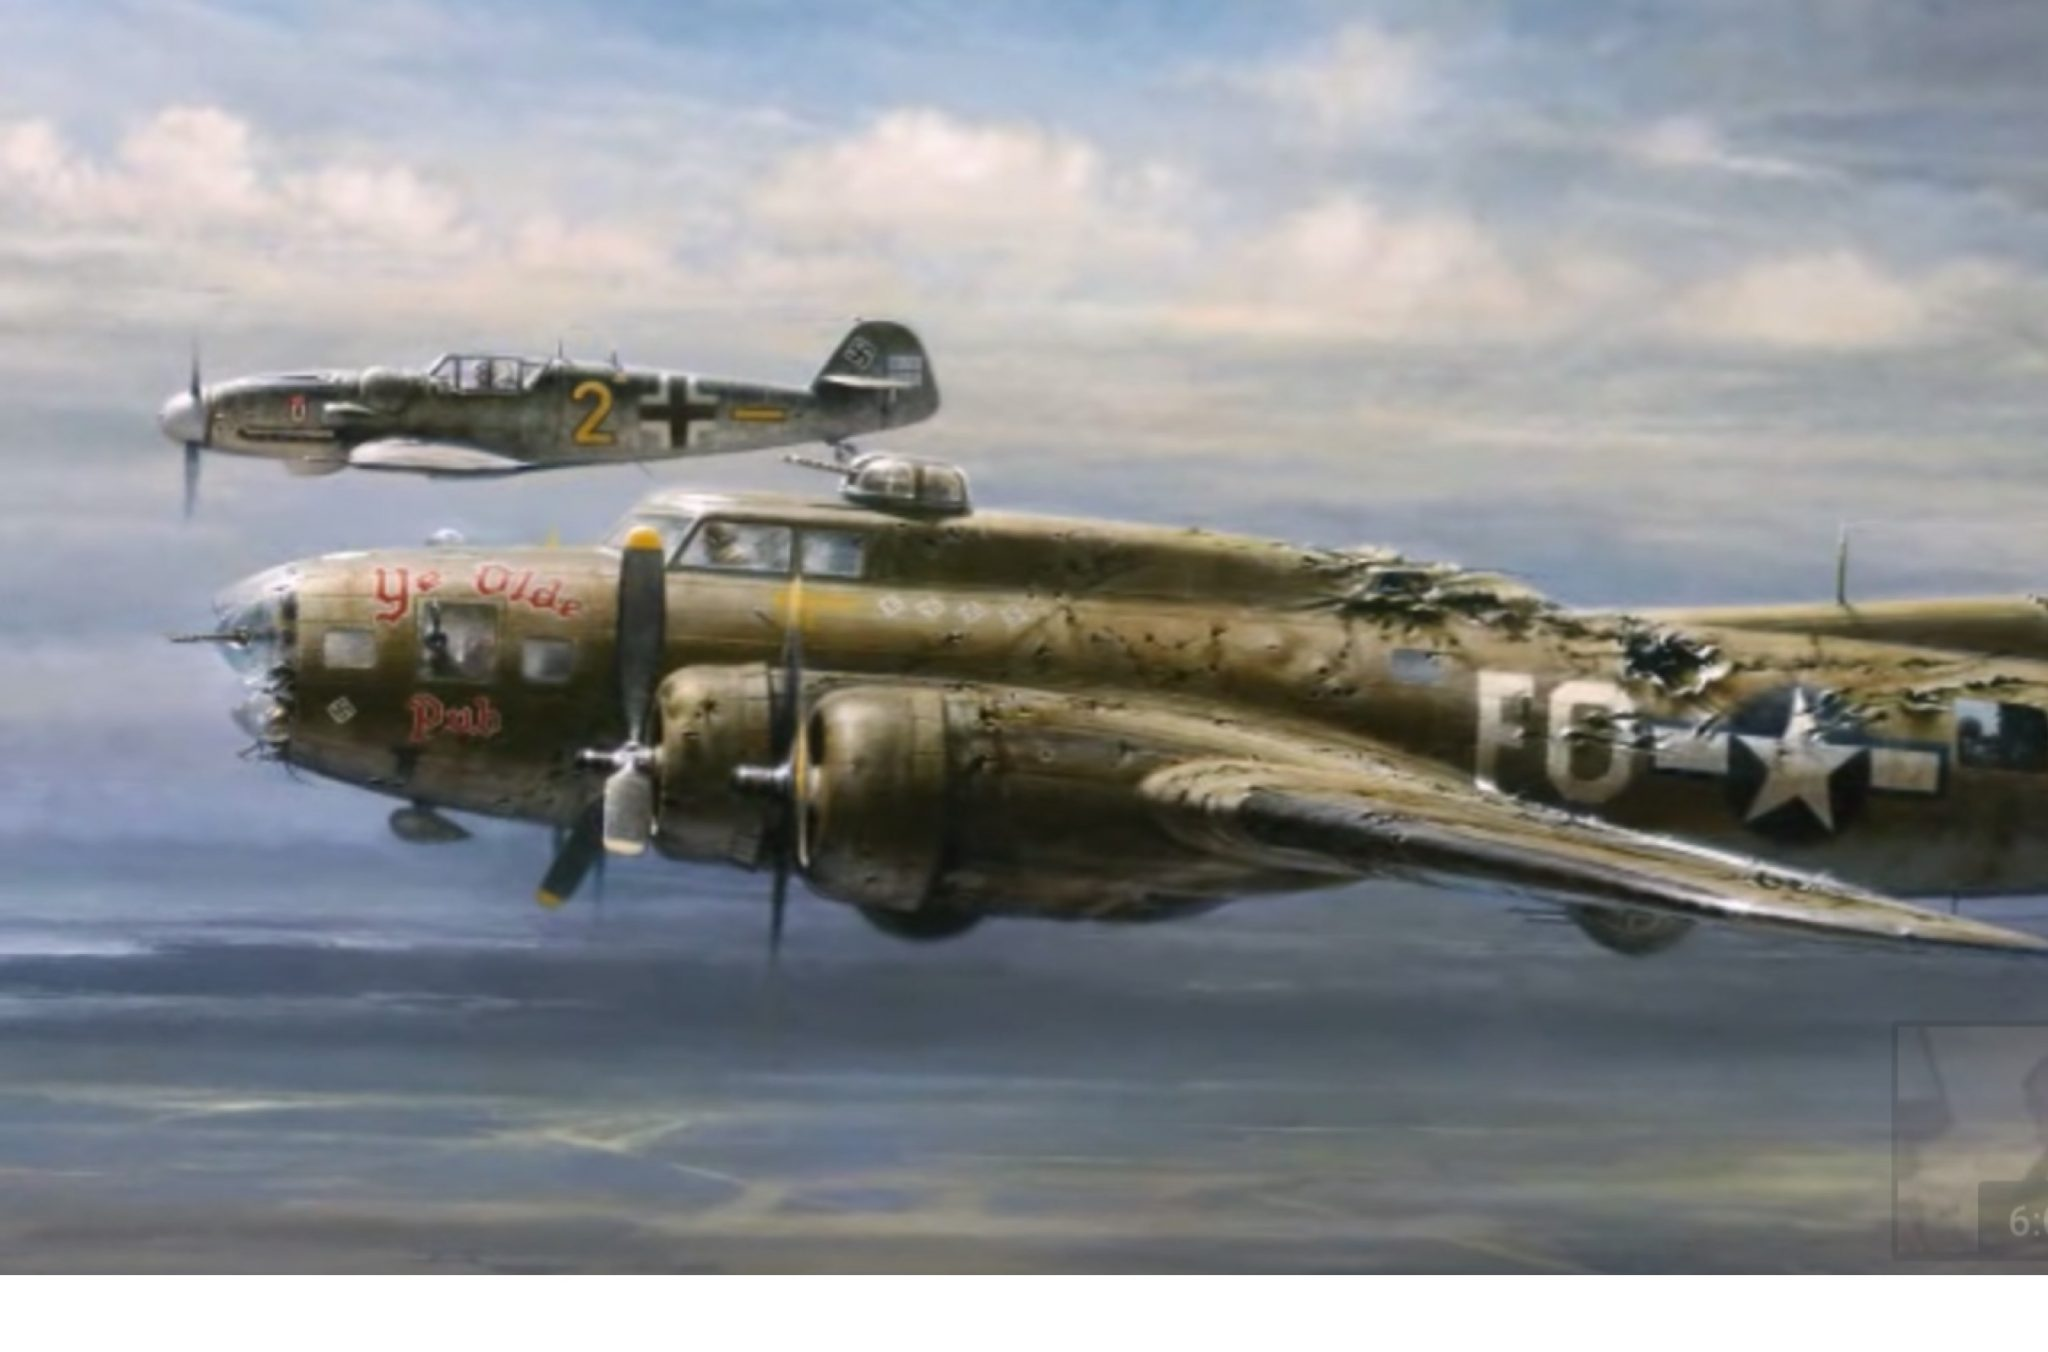 Ww1 German Planes >> Brotherhood in The Skies: The Nazi Pilot Could Have Shot Down The American B-17 But Gave Him ...